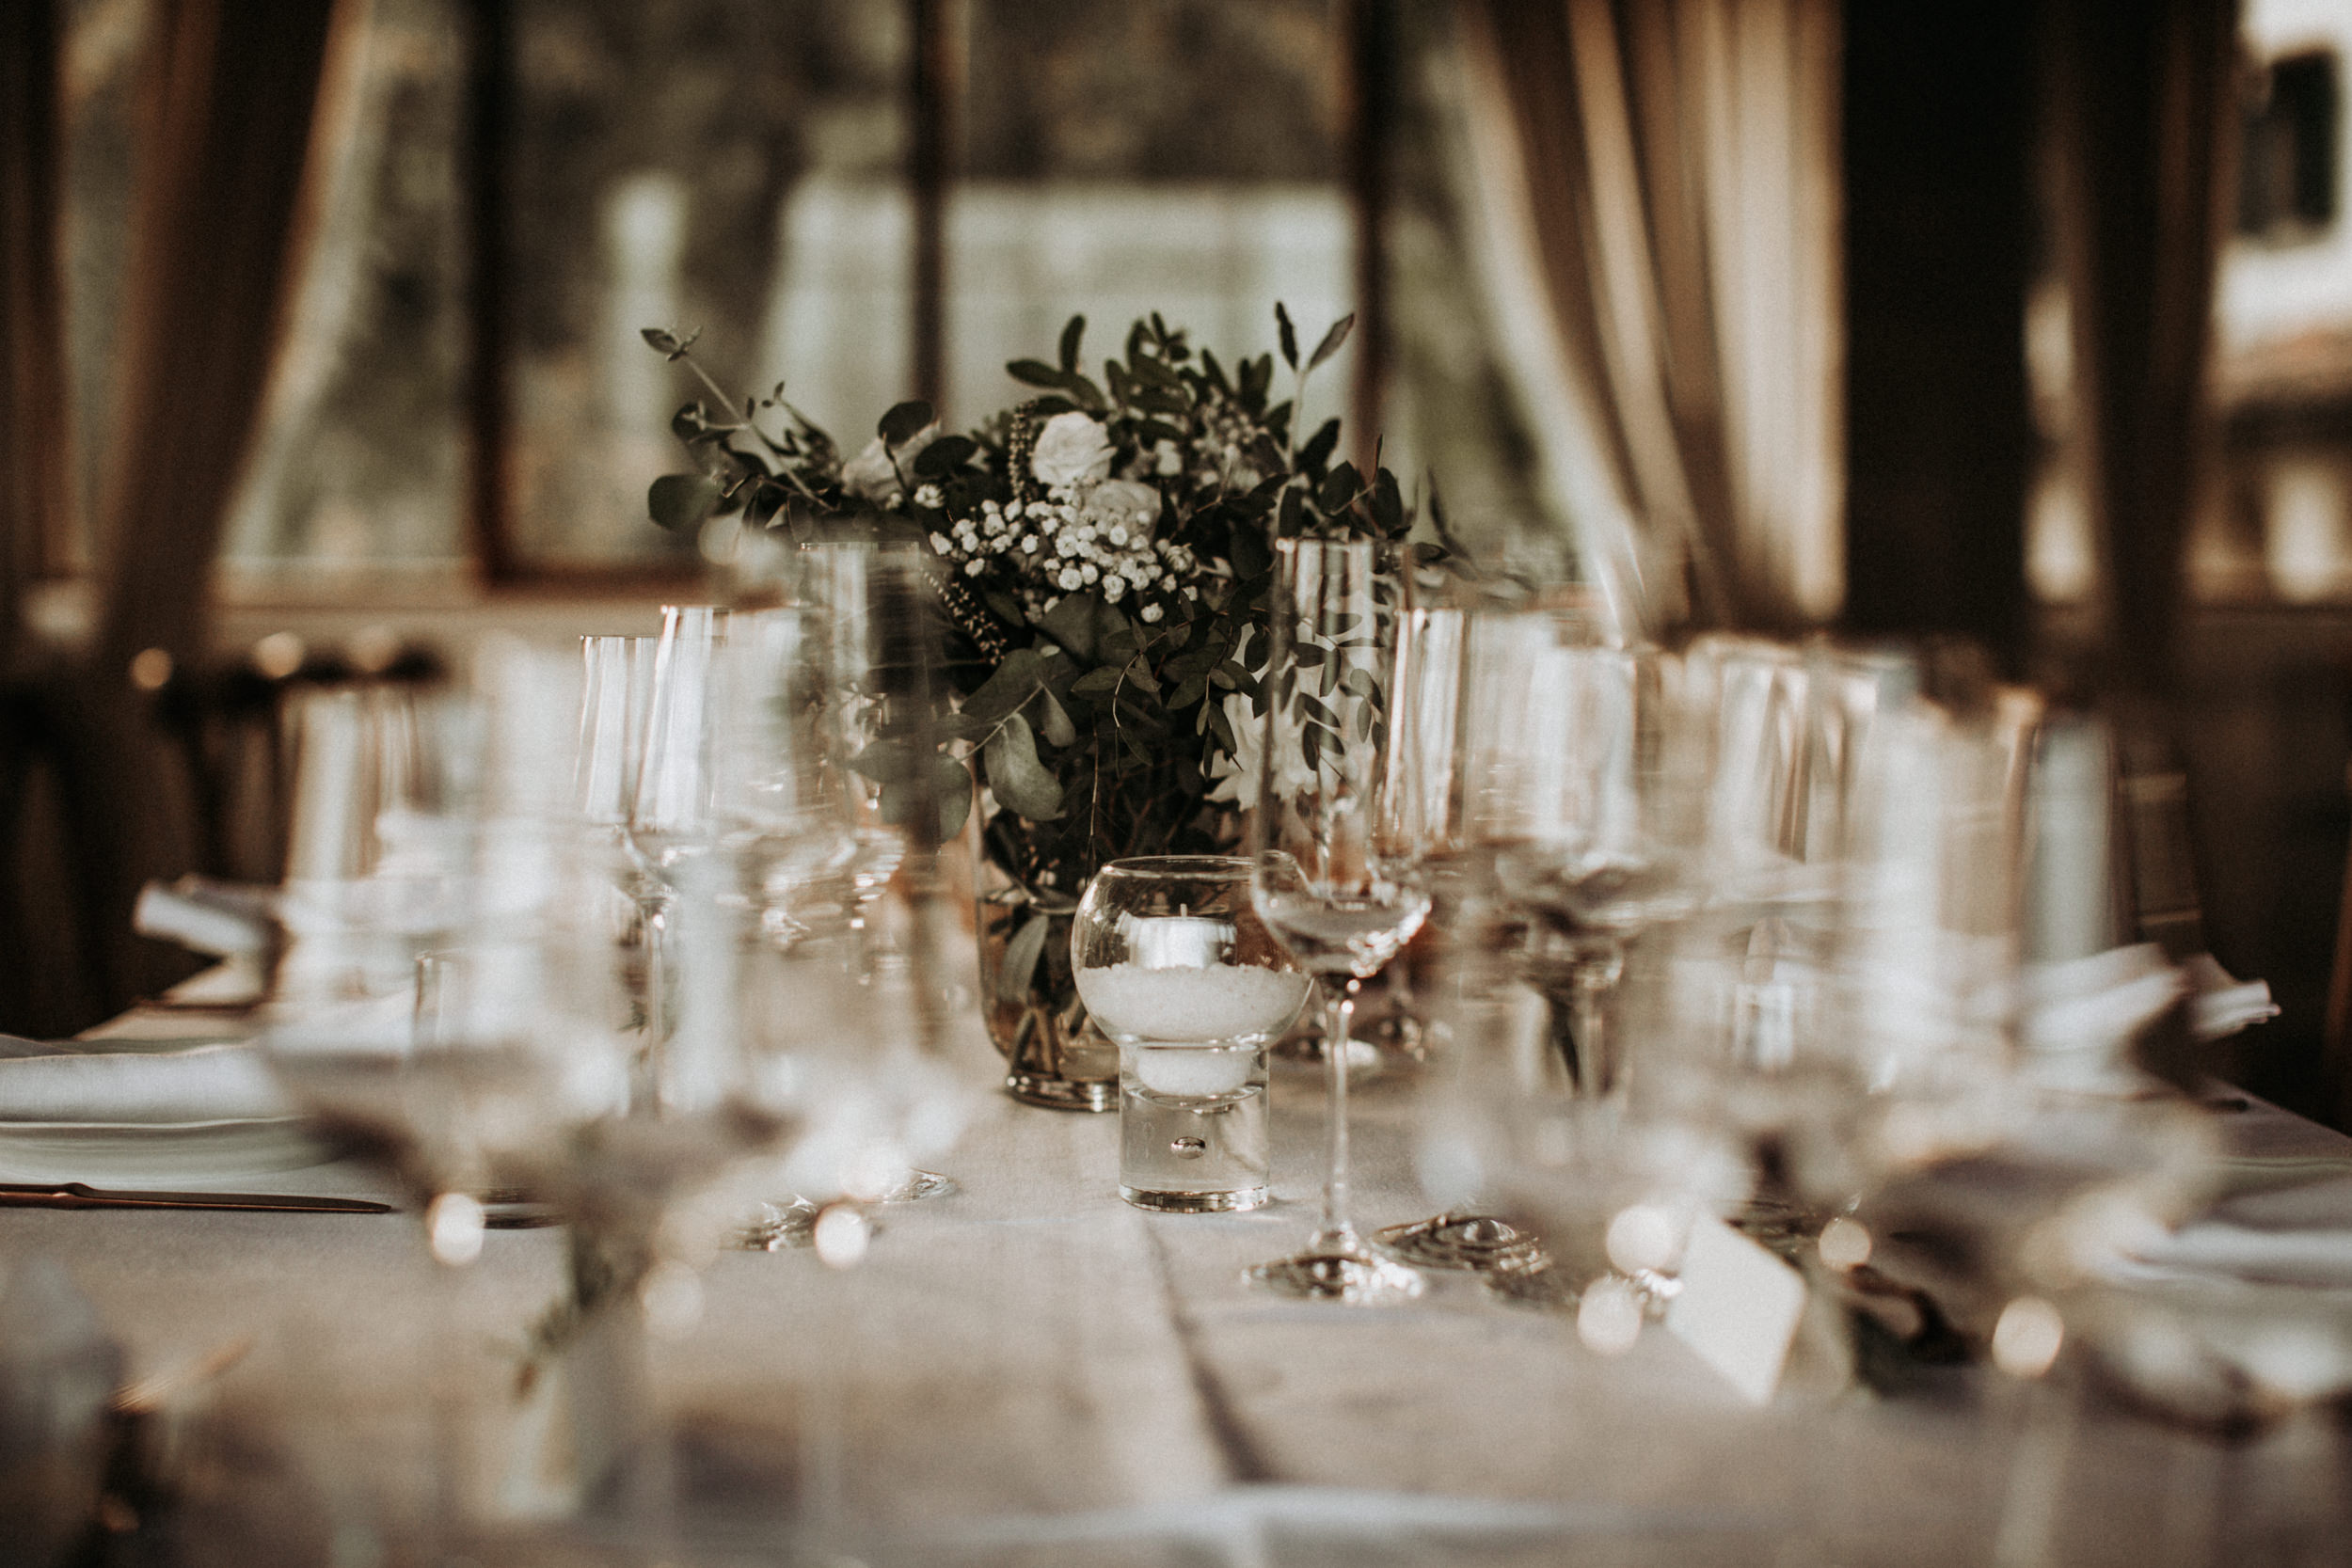 dm_photography_KW_Tuscanyweddingday_391